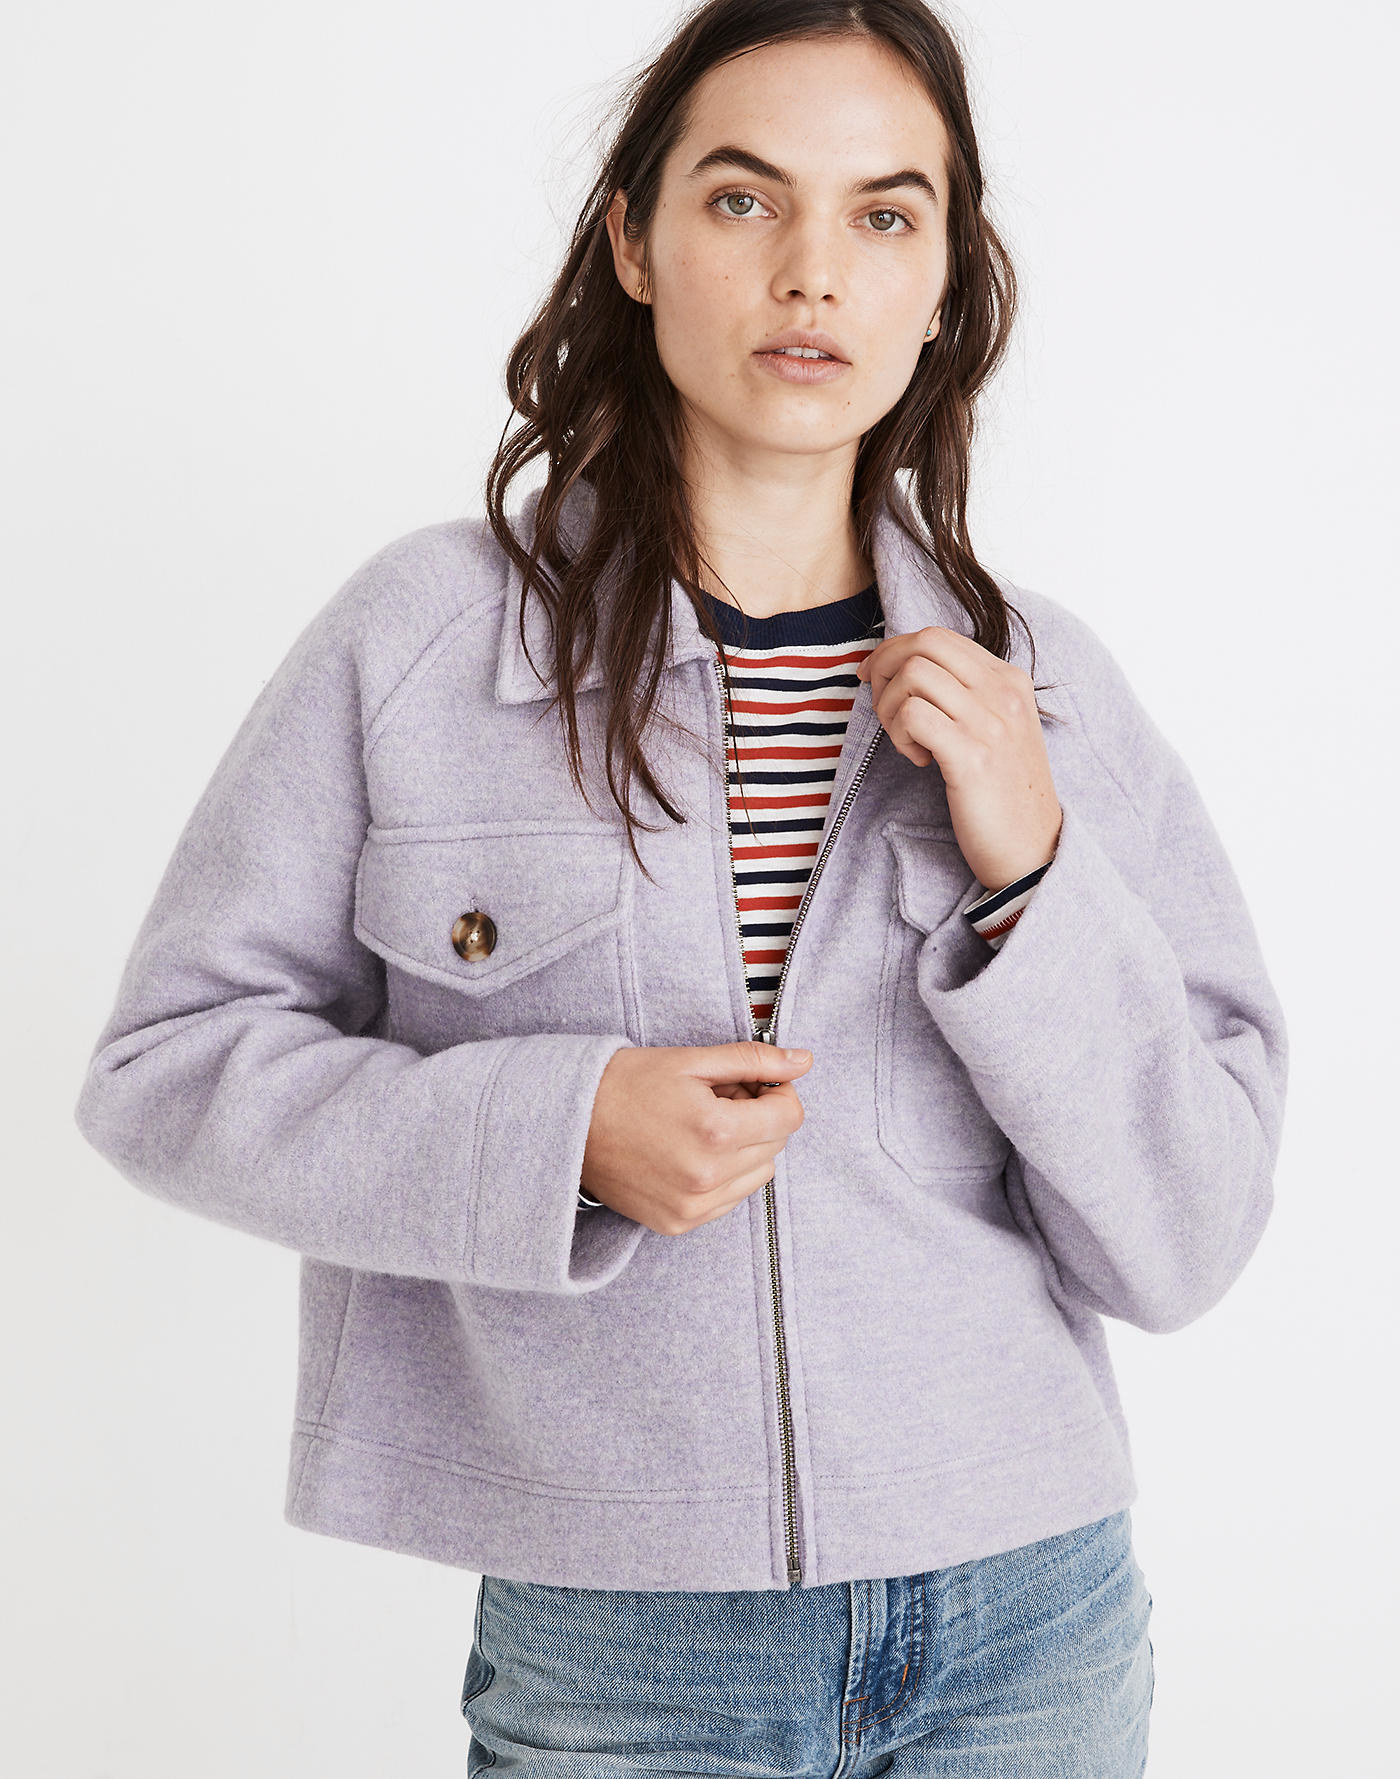 A model wearing the boxy lavender zip-up jacket with faded jeans